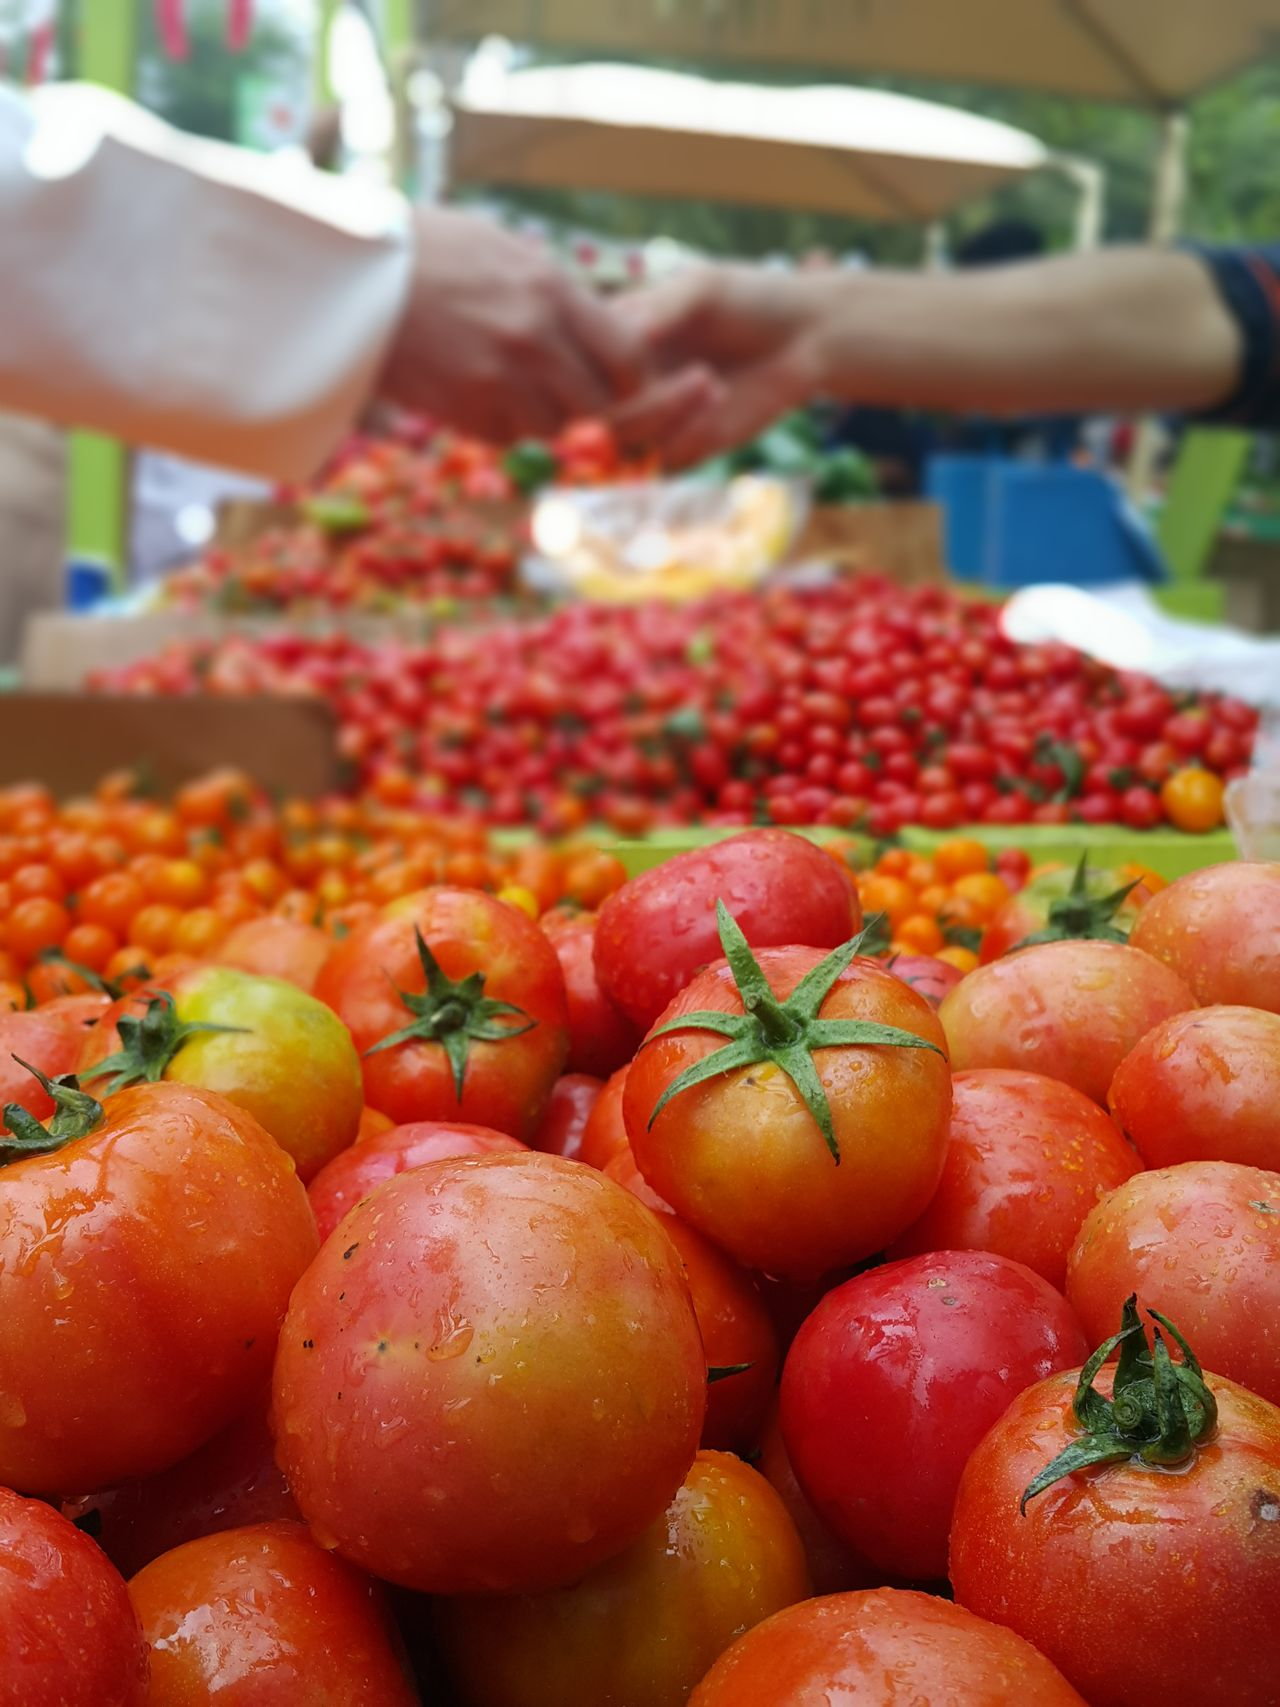 Stalking the tomato guy for 'action' shots🍅📸 Healthy Eating Food Freshness Market Stall Abundance Healthy Lifestyle Business Hands Close-up Juicy Vegetables Tomatoes Sale Farmers Market Commerce Transaction